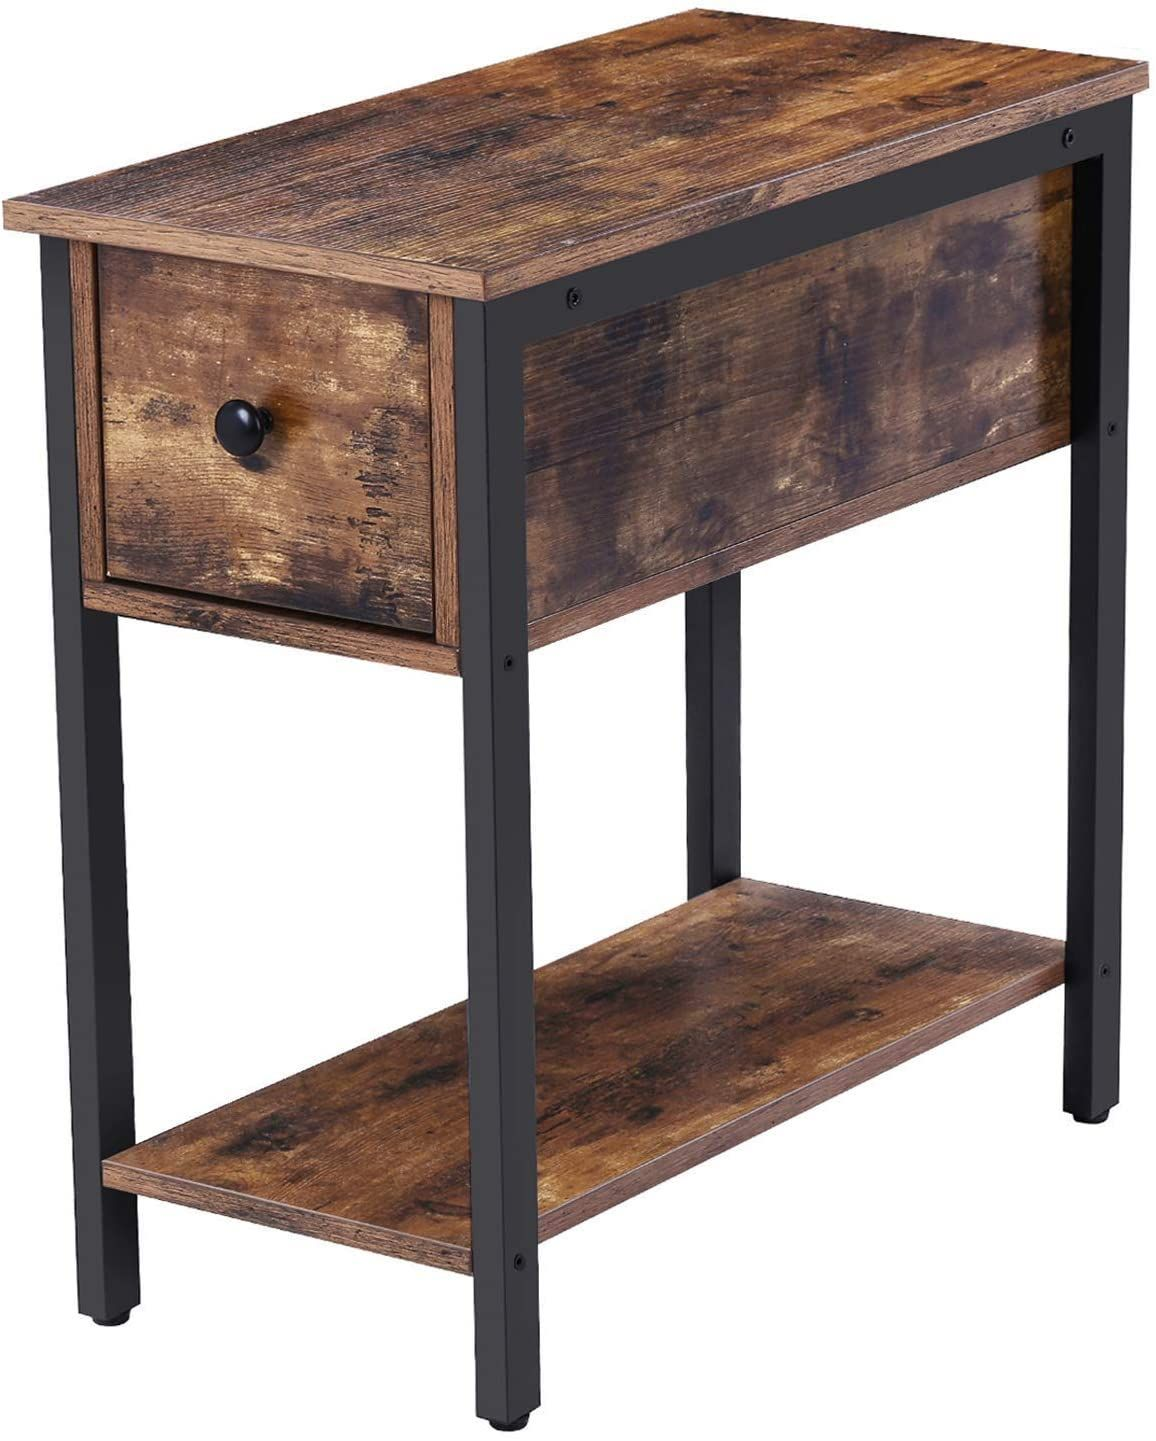 Farmhouse Accent Tables Rustic Accent Tables Farmhouse Goals In 2020 Metal Accent Furniture Table For Small Space Rustic Accent Table